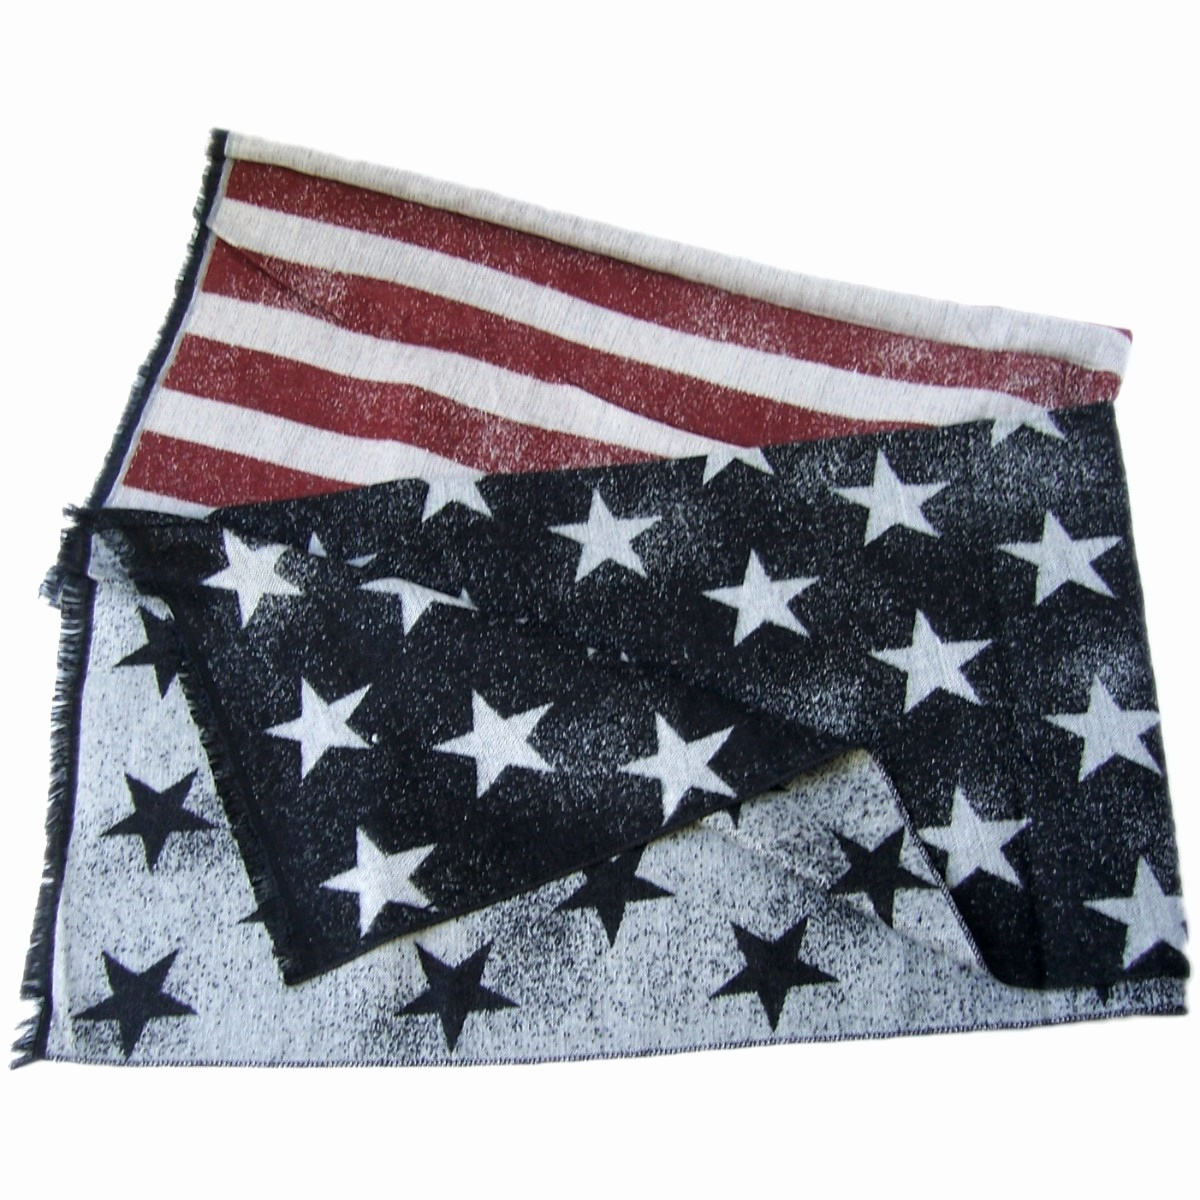 Schal Winter Stars and Stripes Sterne 185cm schwarz grau rot T2861